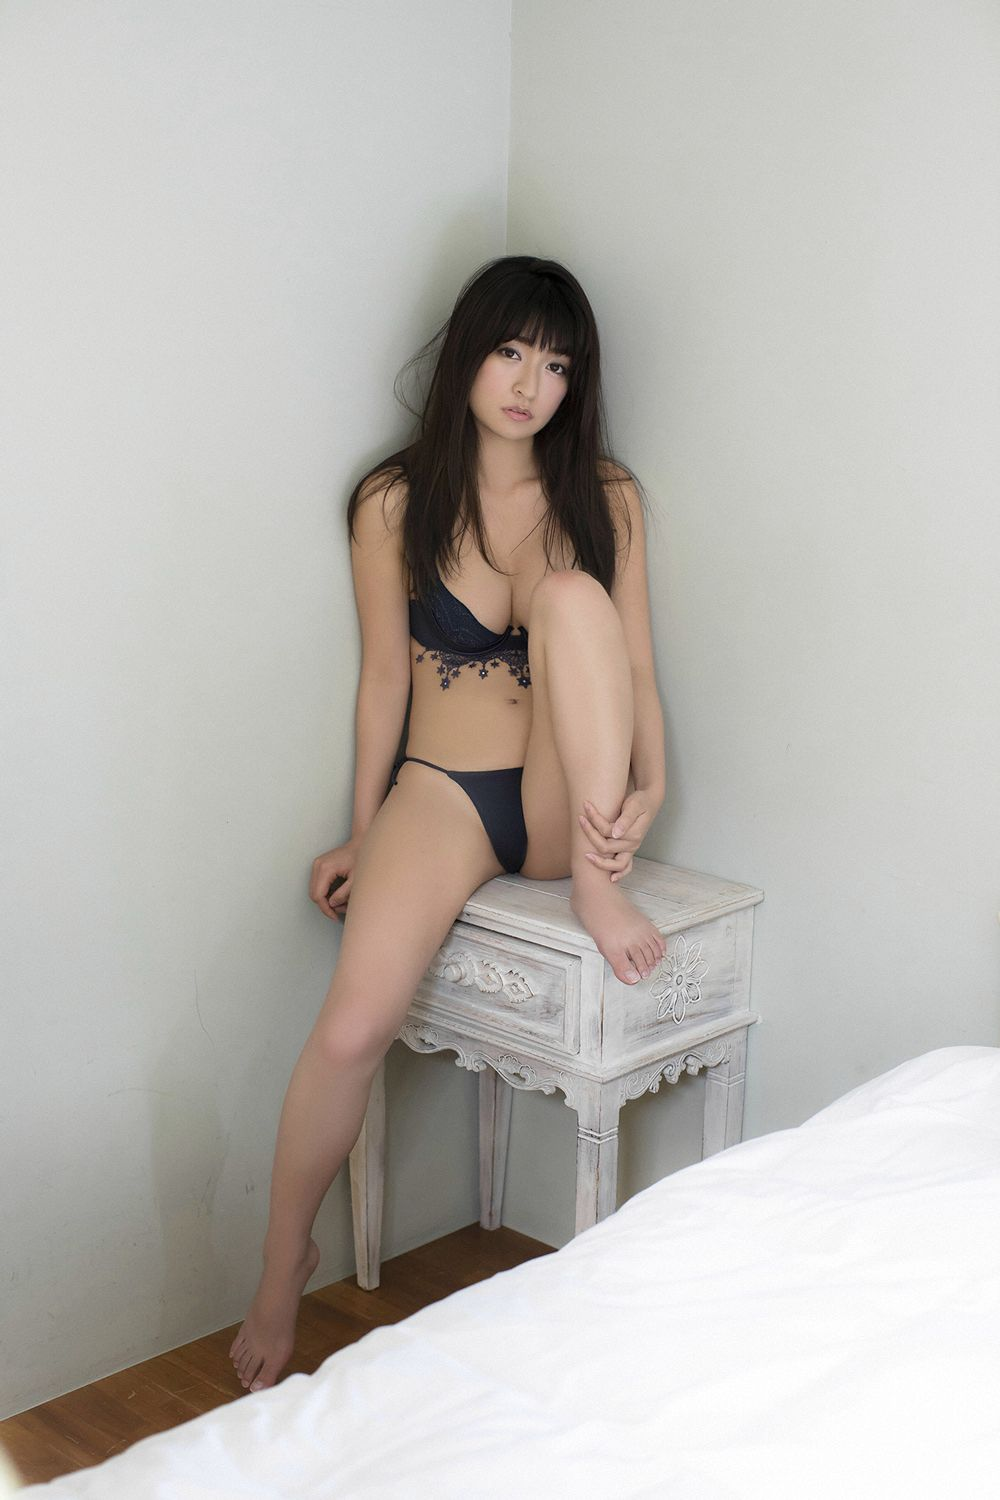 This is a girl with big tits who wants to be a popular girl052